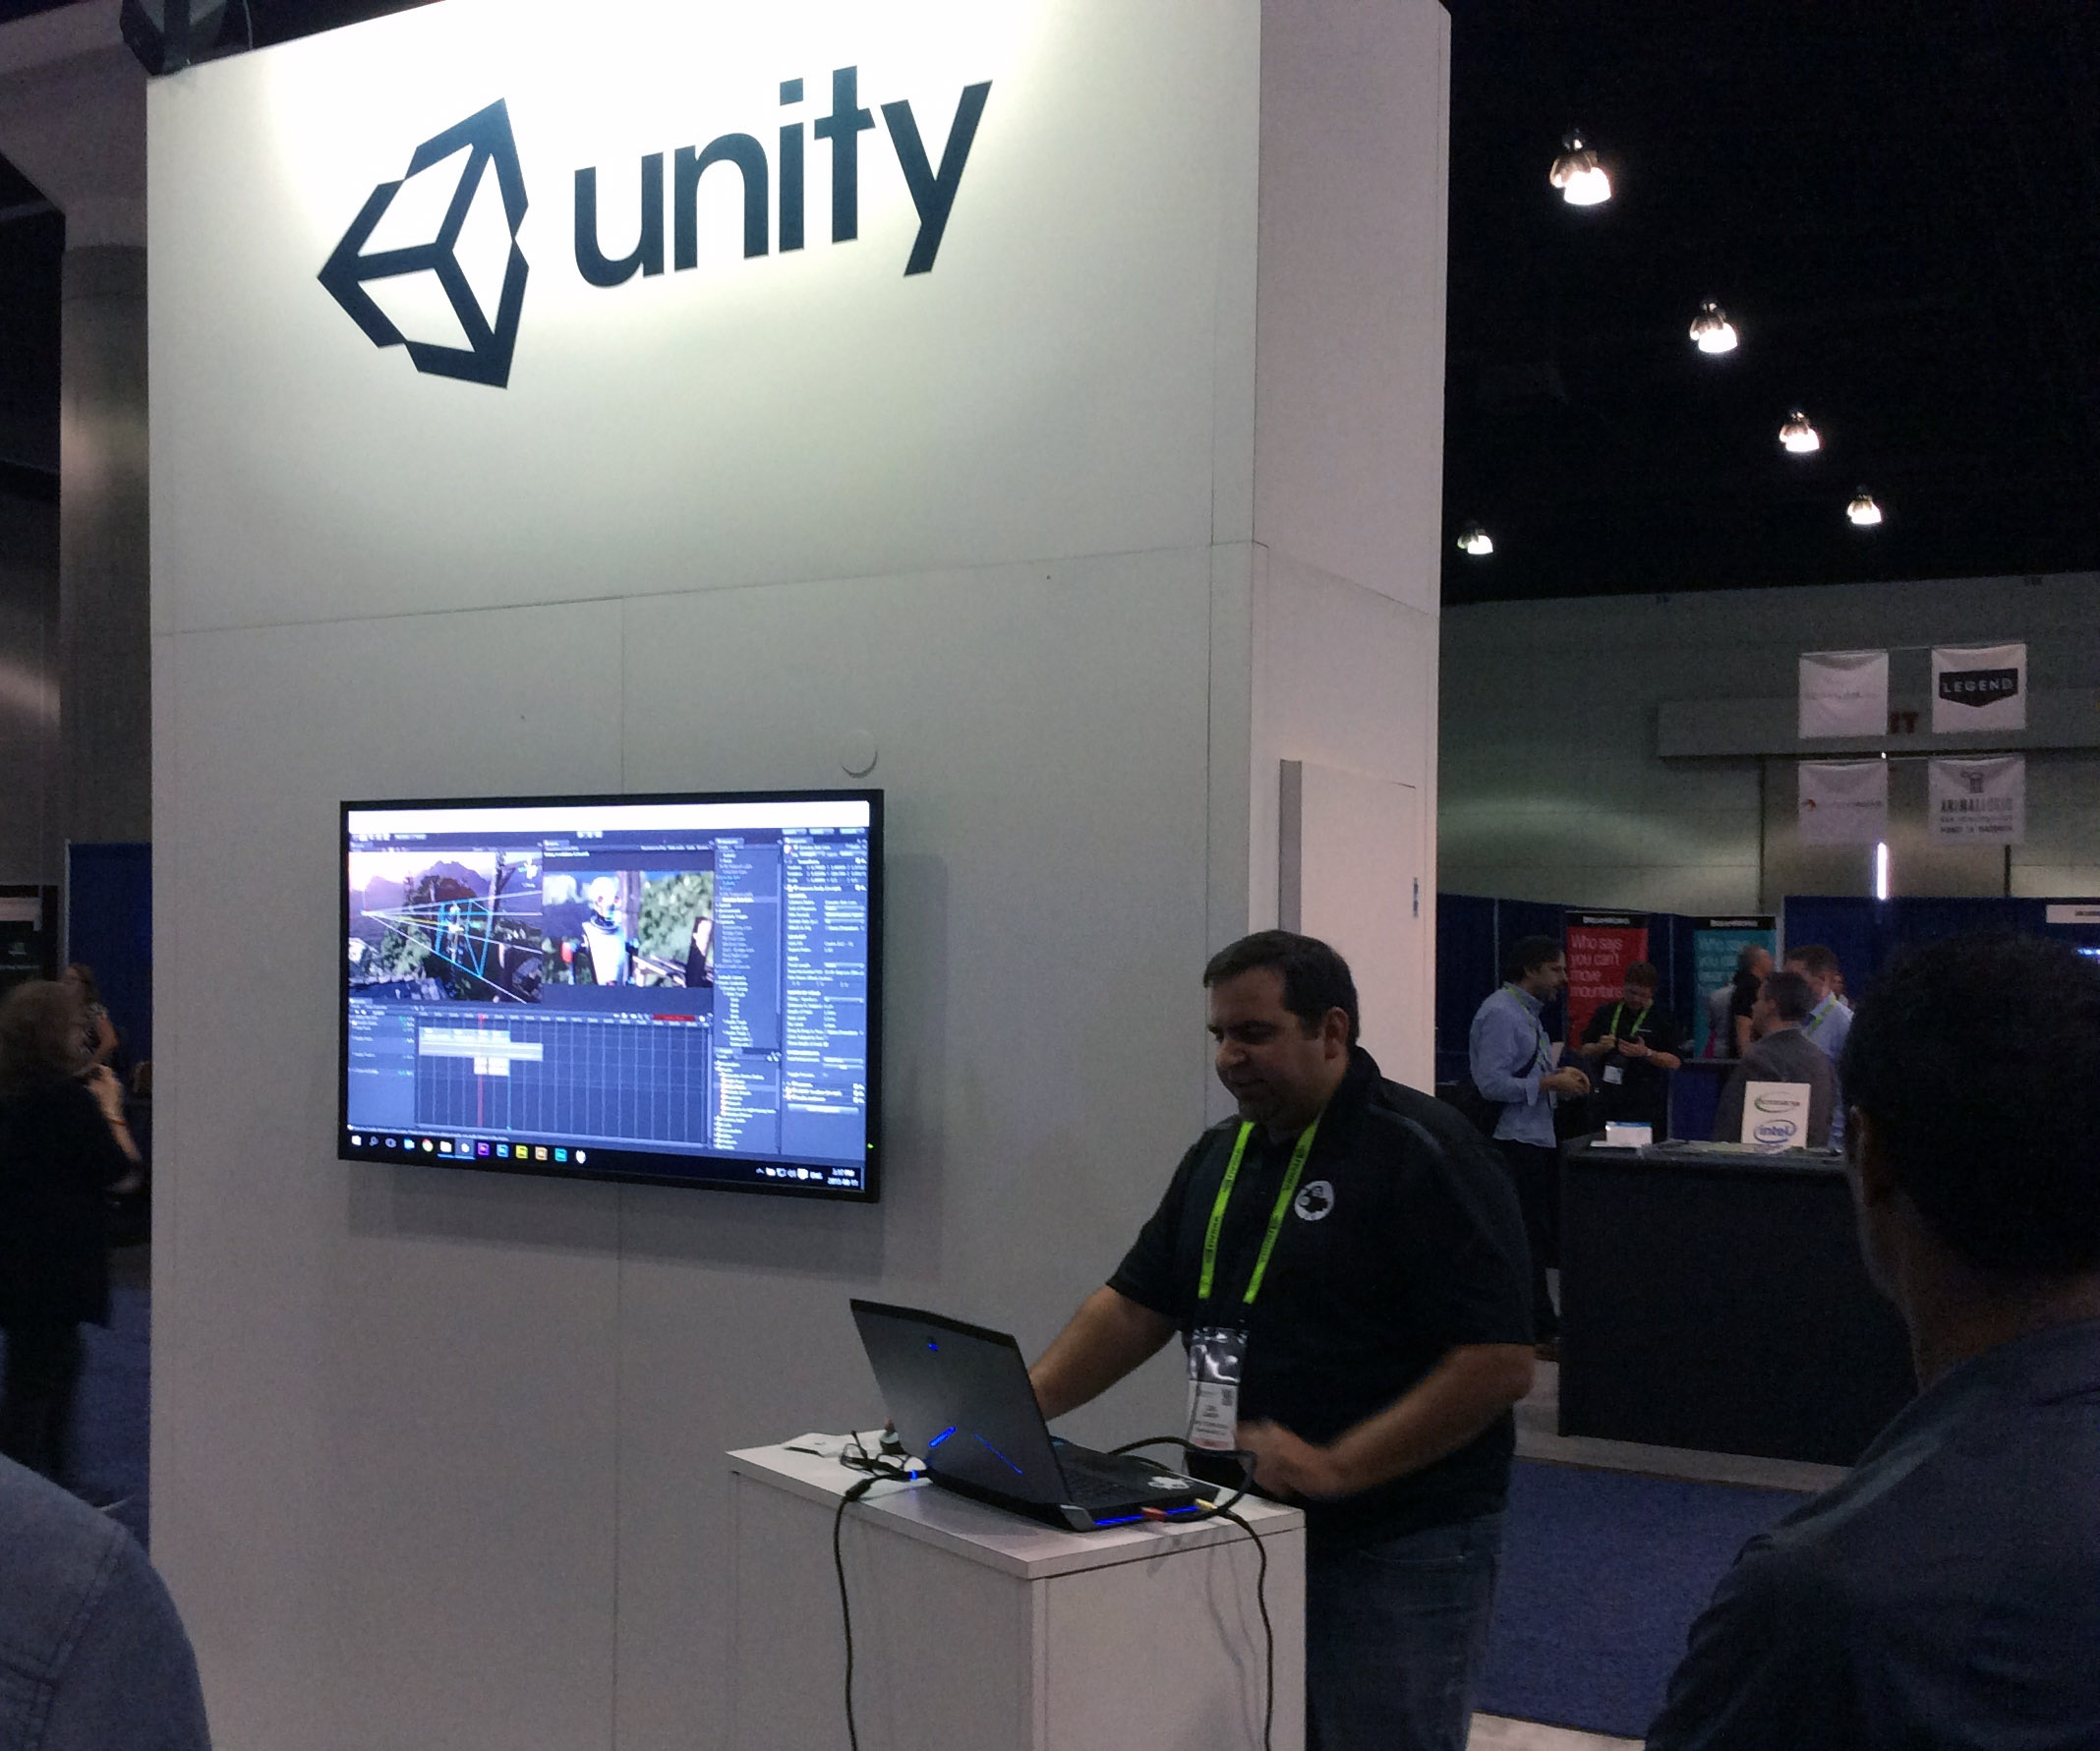 Unity booth